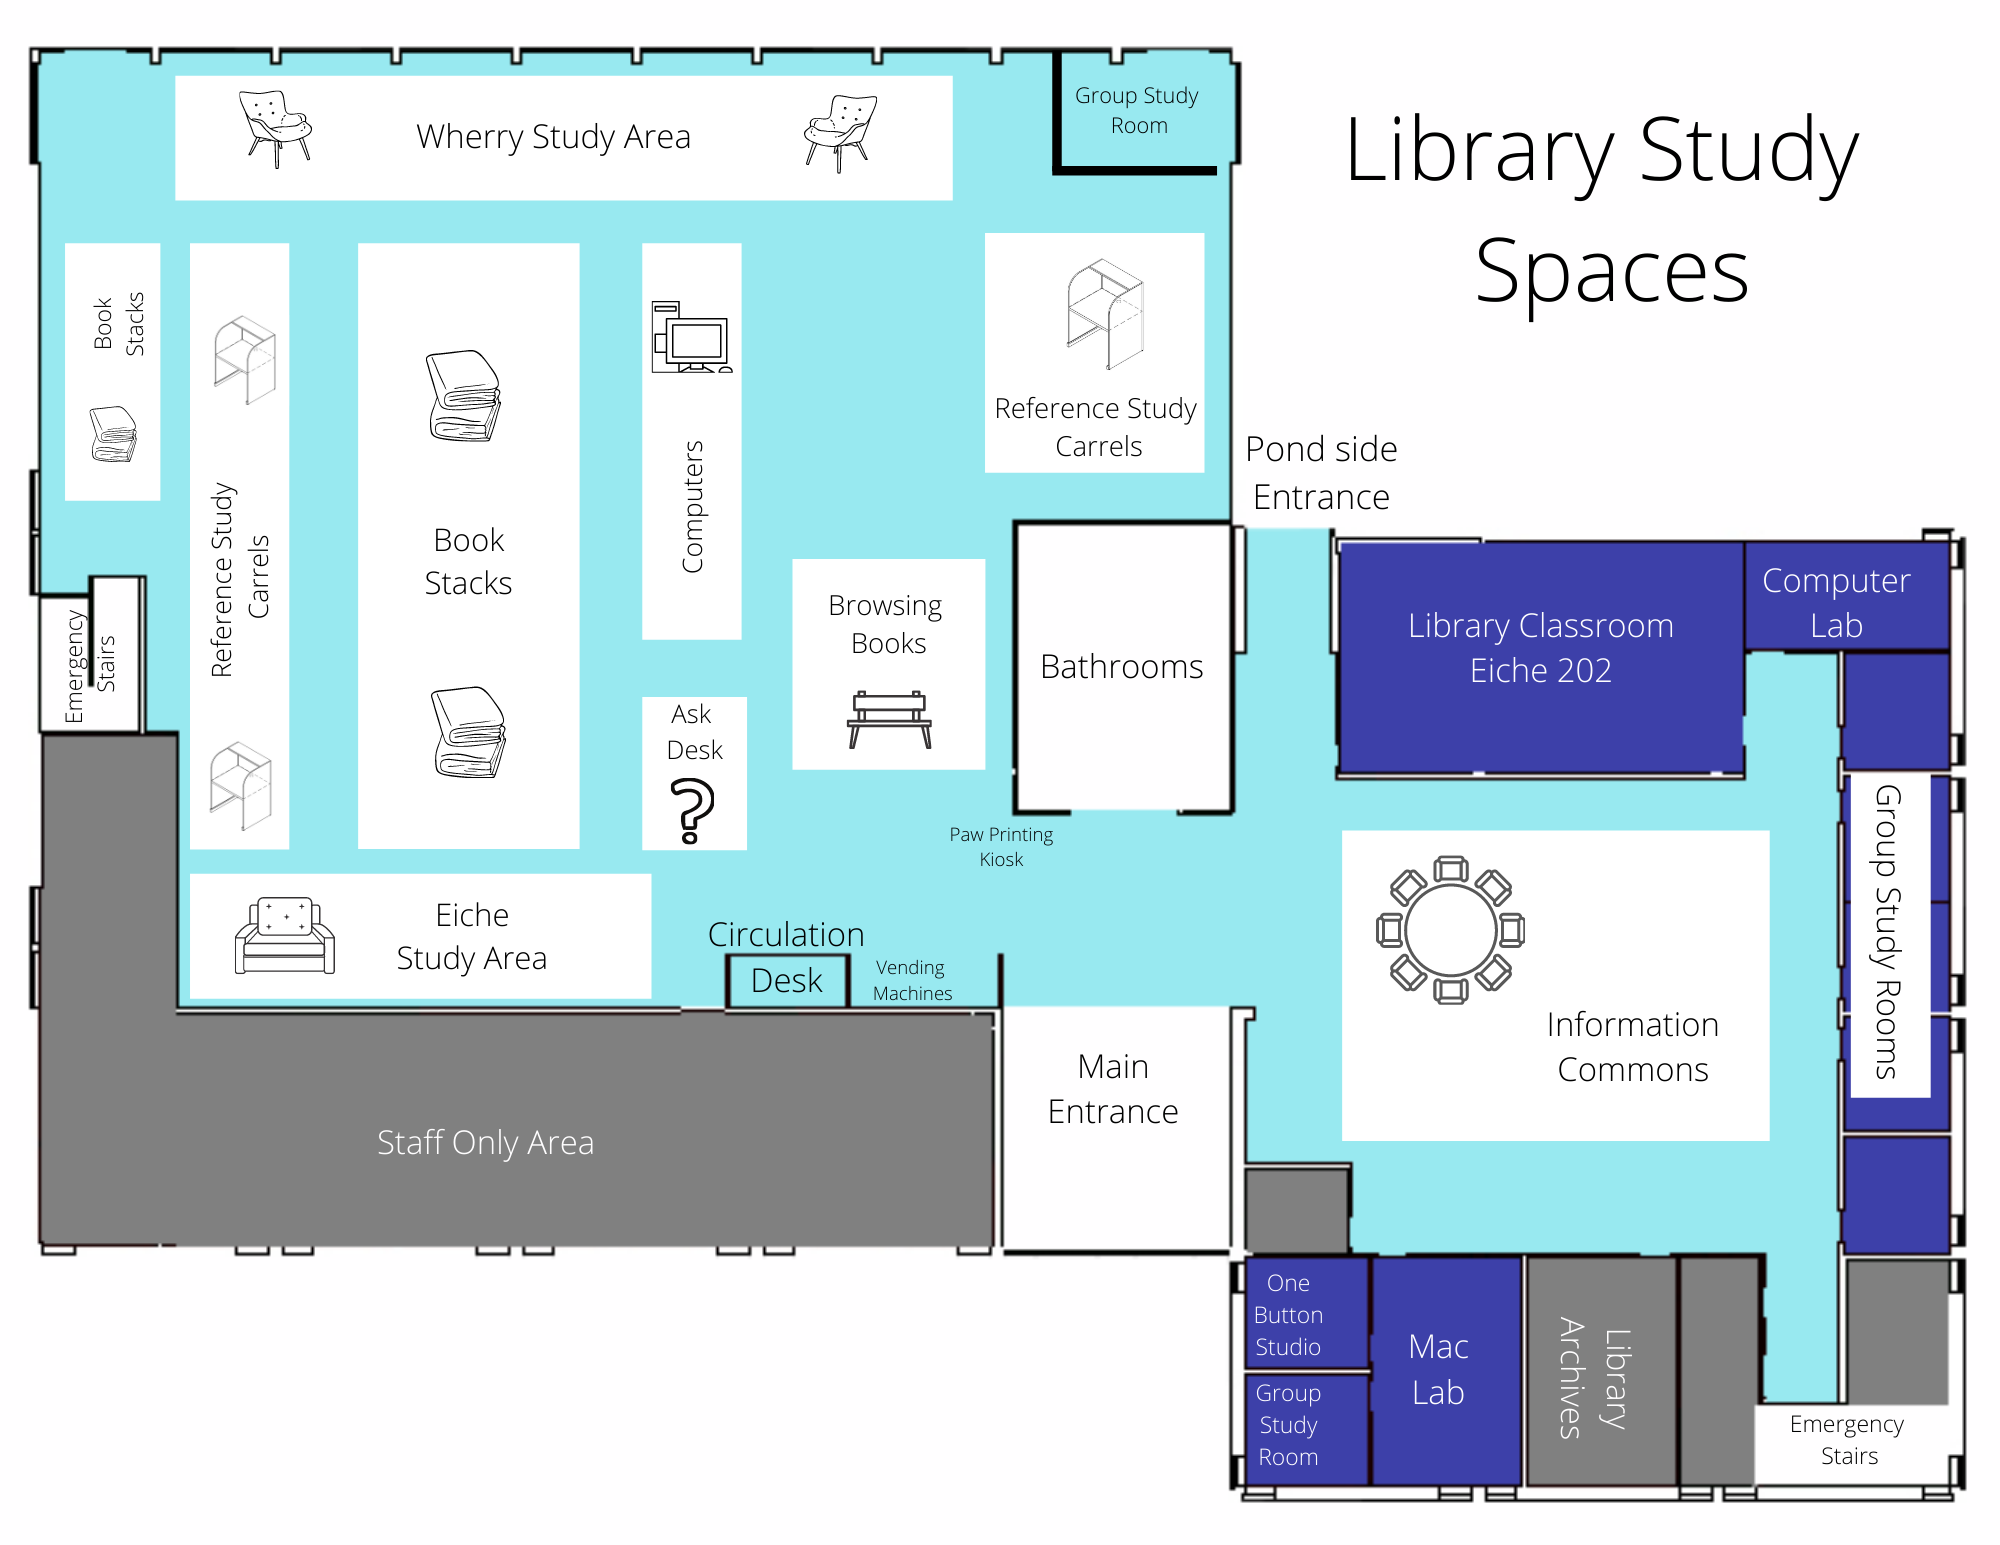 map of the study spaces in Eiche Library